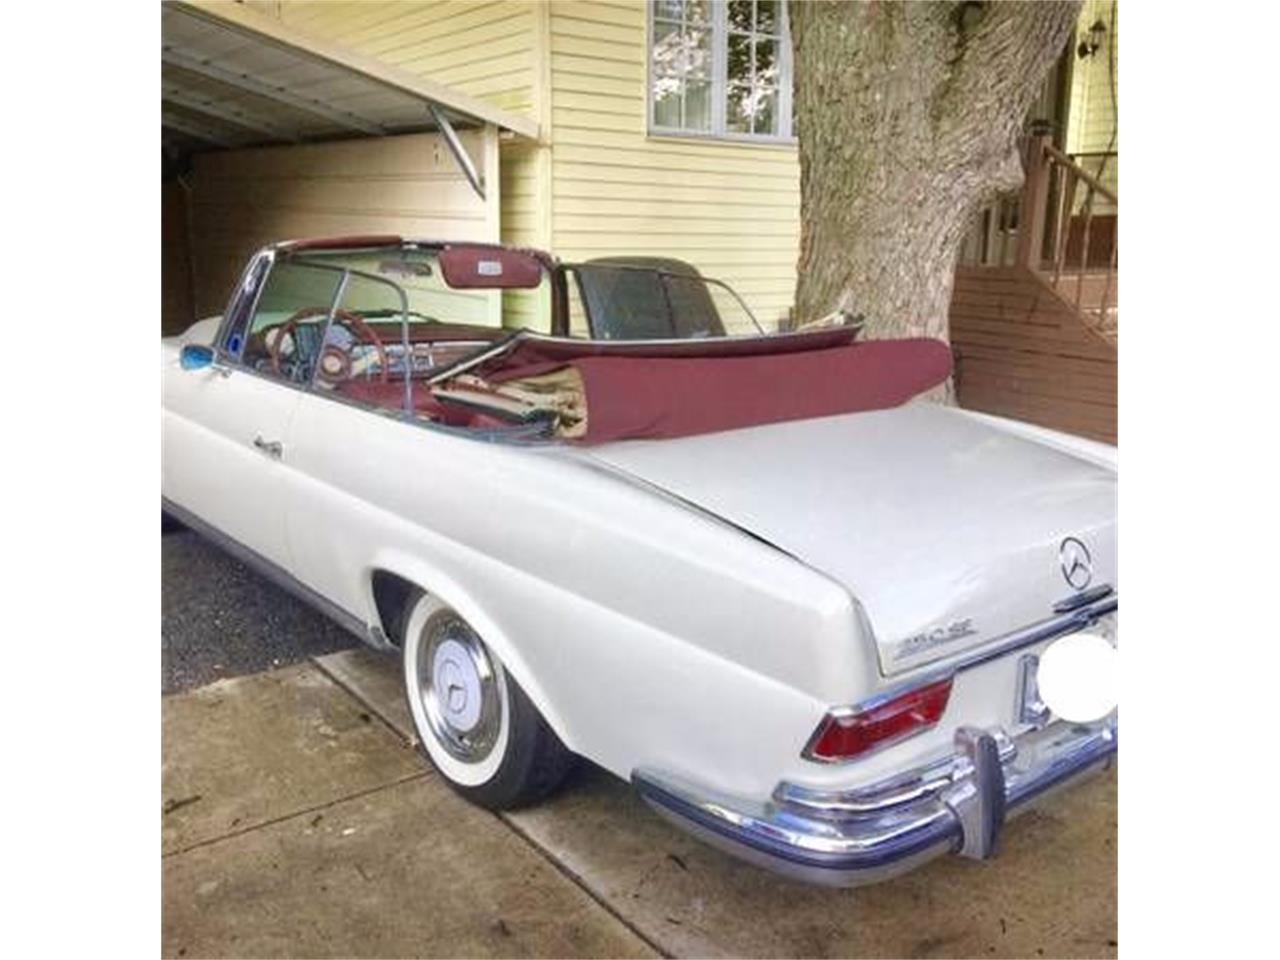 Large Picture of '66 Mercedes-Benz 250 located in Michigan - $78,495.00 Offered by Classic Car Deals - MOB0